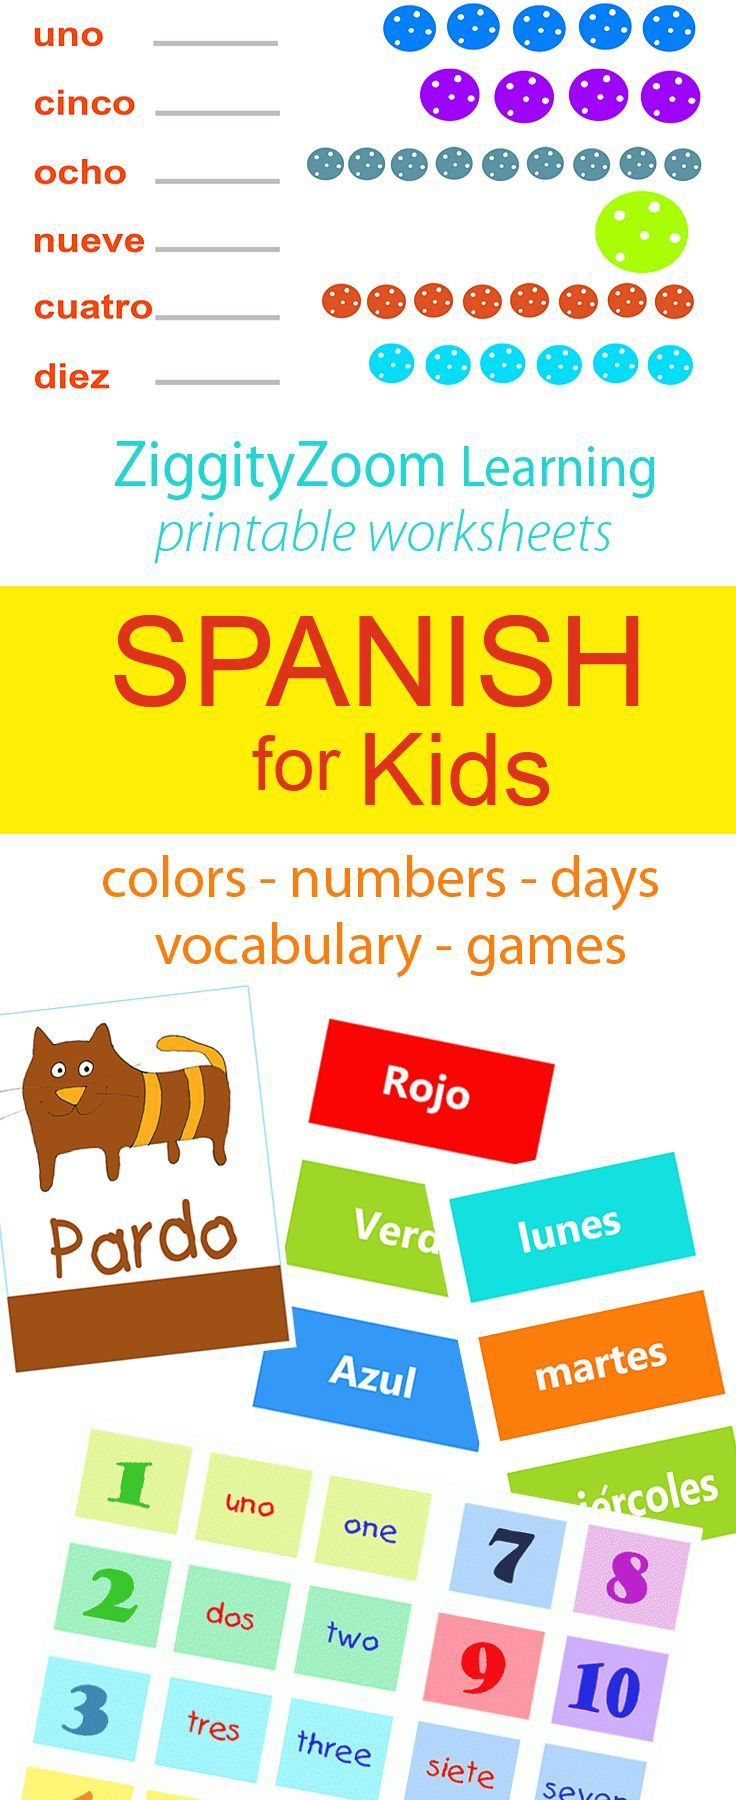 Free Printable Spanish Worksheets For Kids Lots Of Beginner Printables For Lea Crafts Wo Spanish Lessons For Kids Learning Spanish Learning Spanish For Kids [ 1800 x 736 Pixel ]